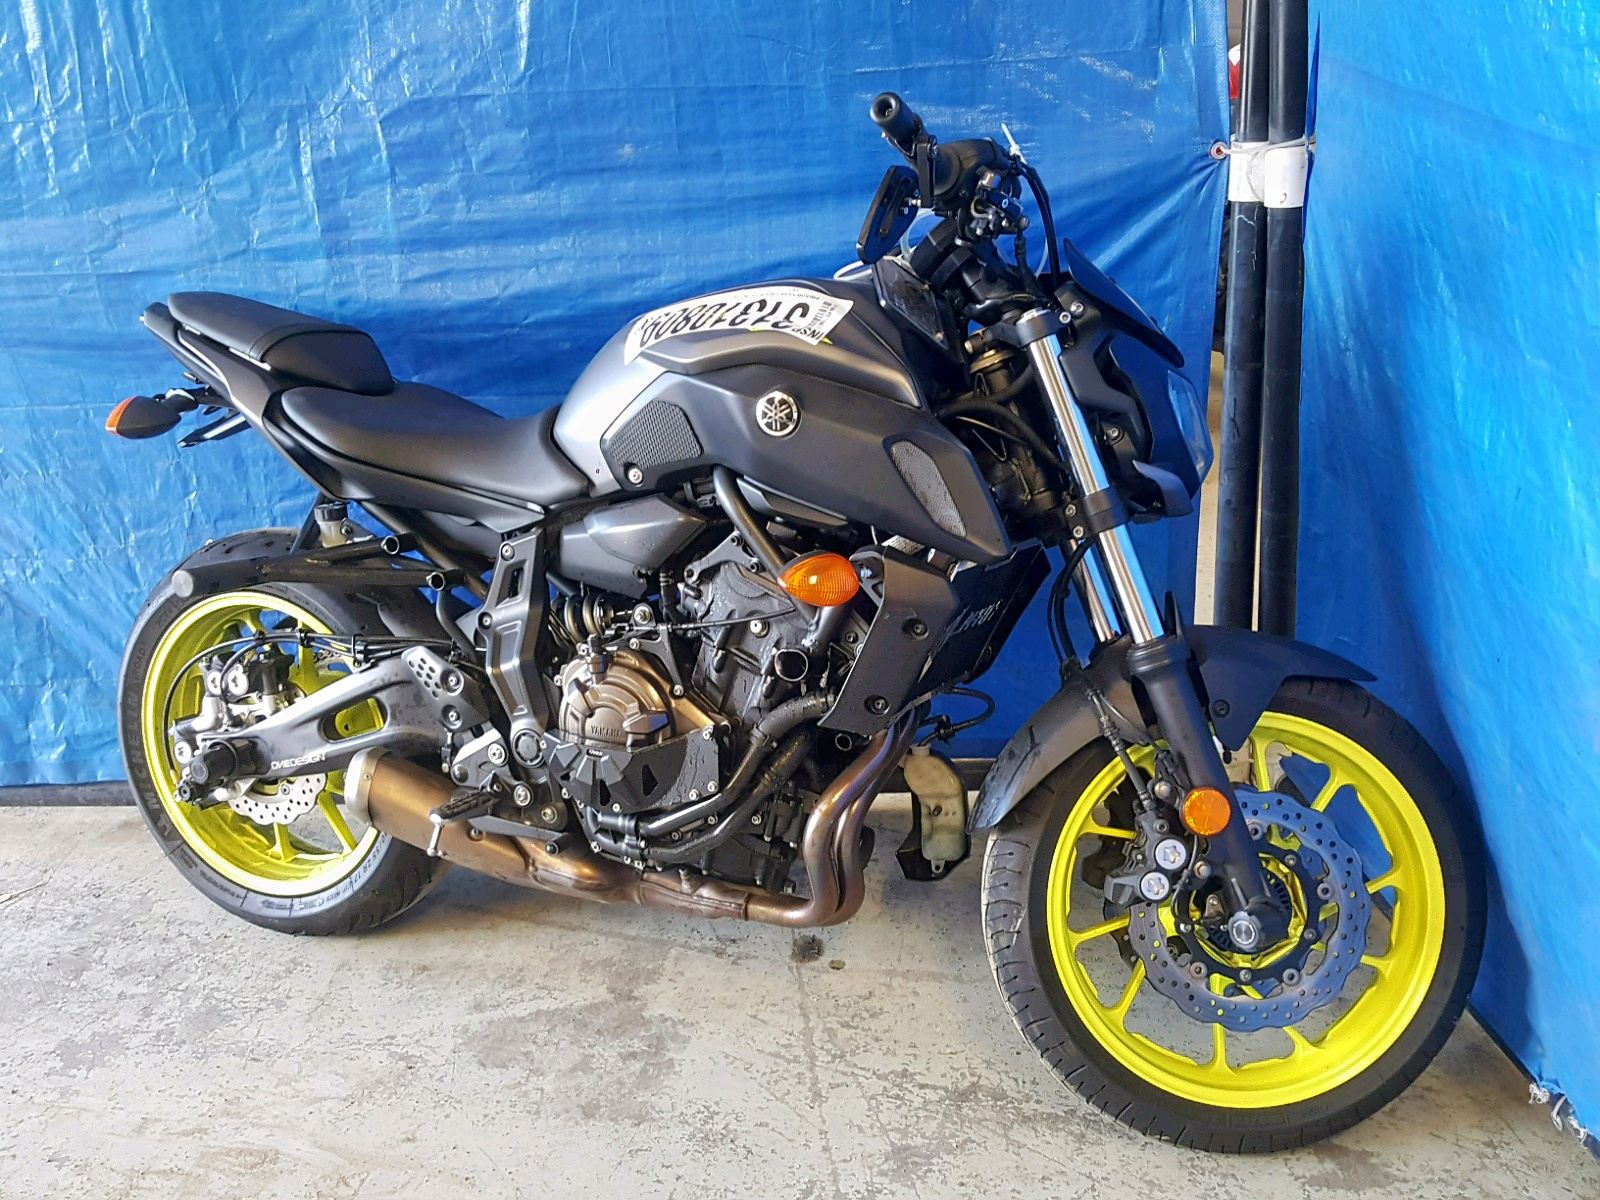 Salvage 2018 Yamaha MT07 C for sale